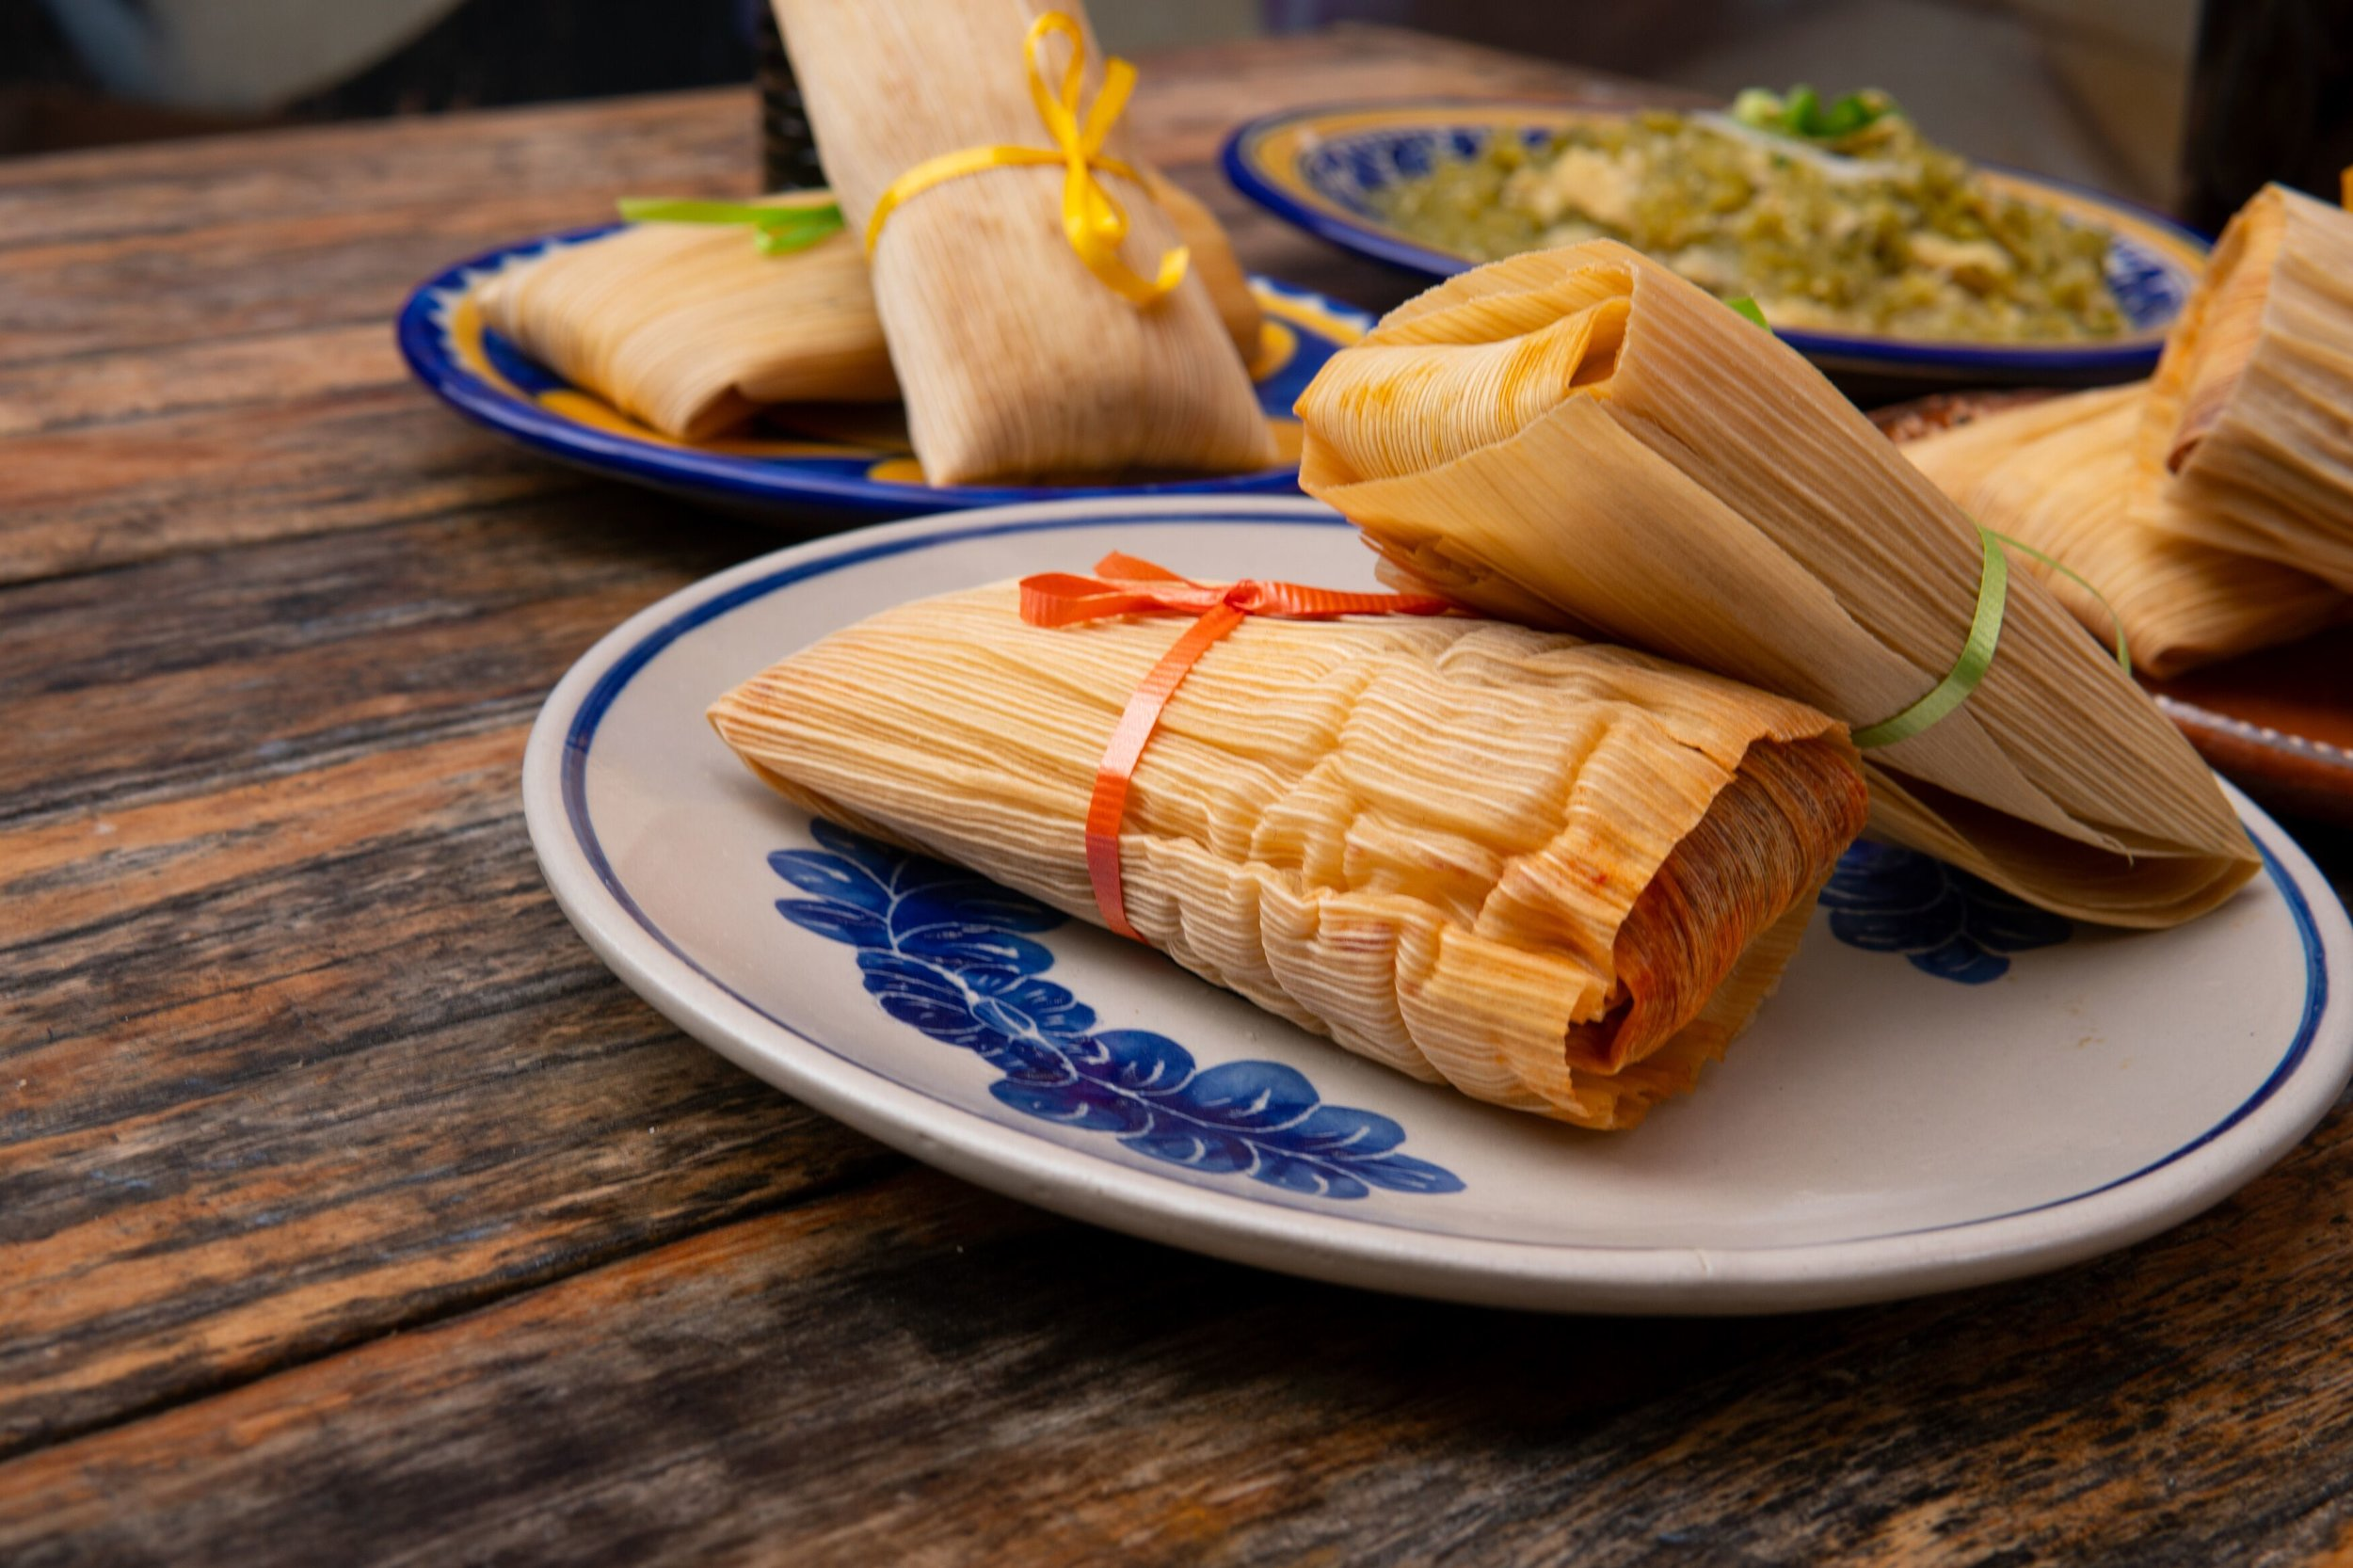 While the menu is varietal, the tamales are one of the most popular items available at La Vegana Mexicana | photo courtesy of 100inc Agency